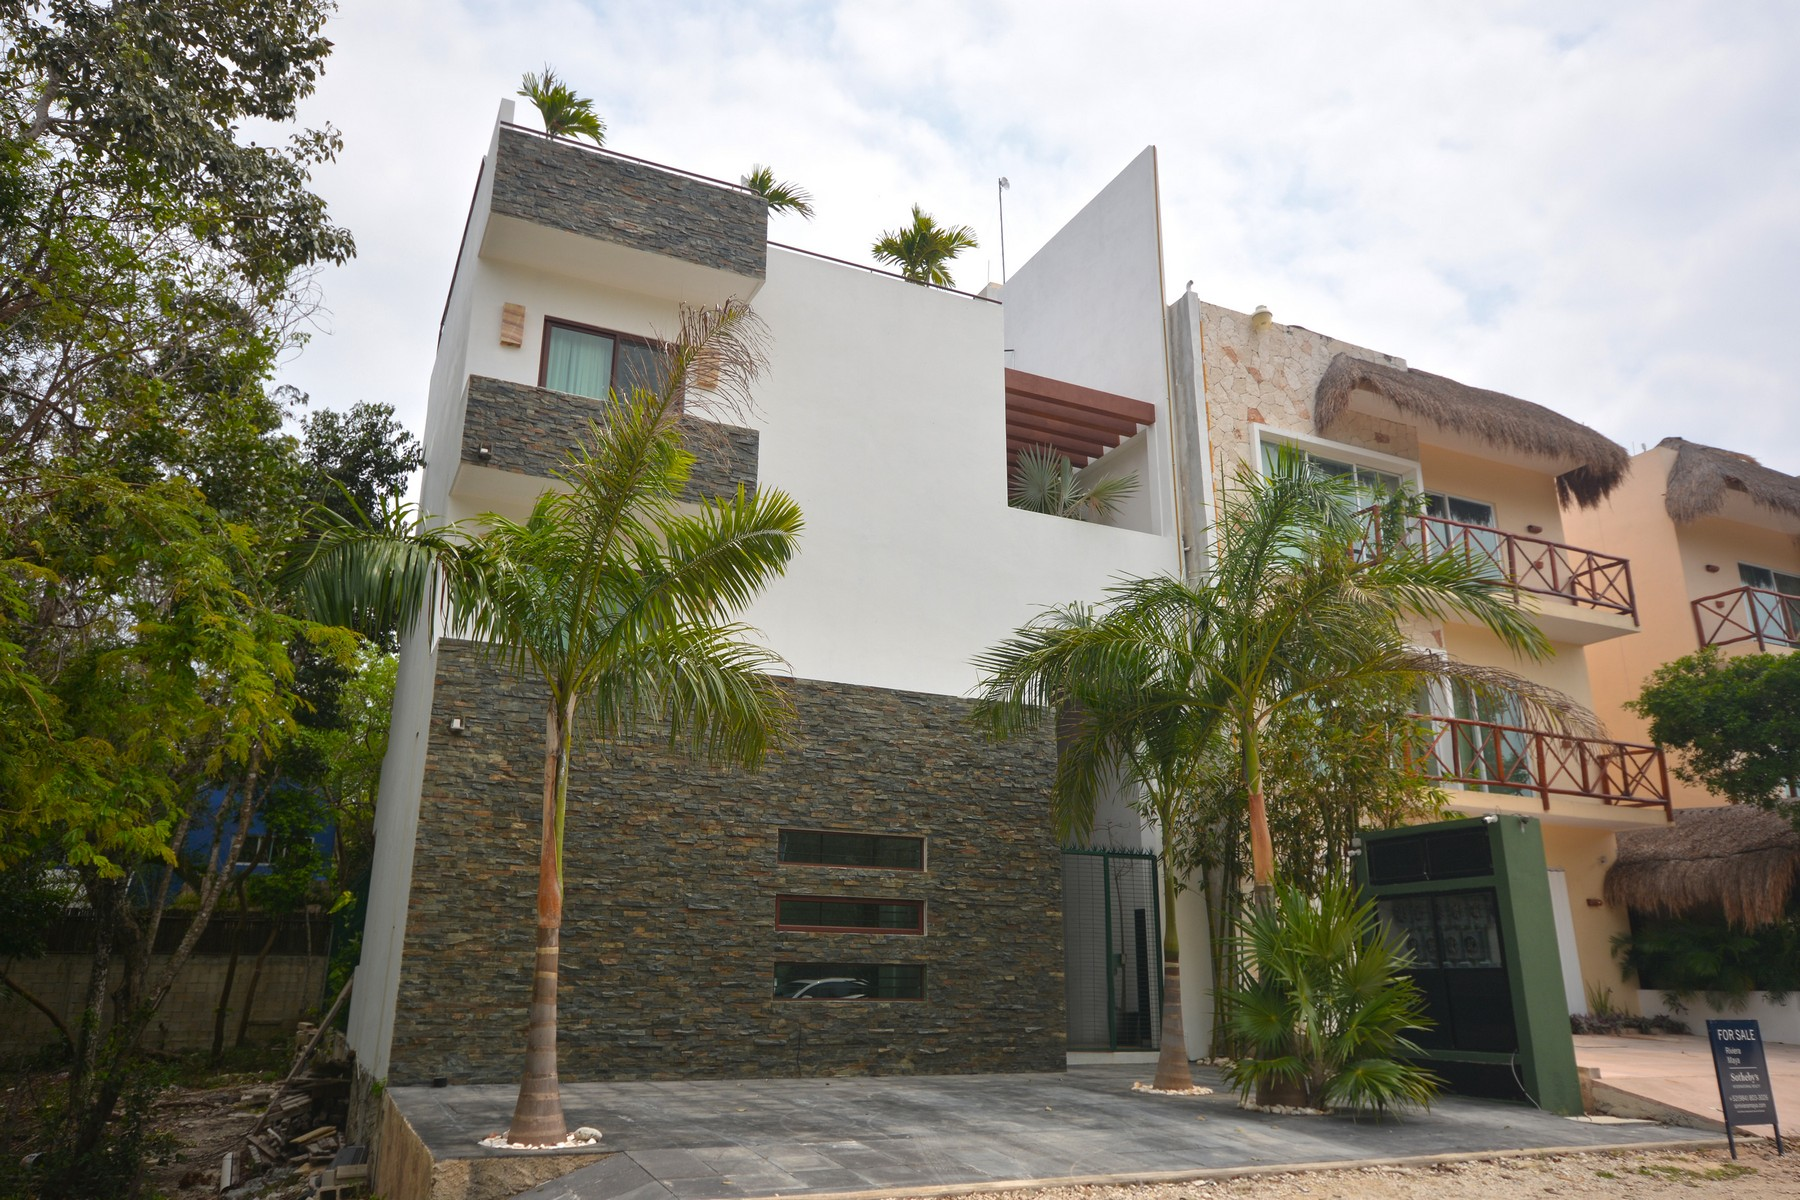 Apartment for Sale at MODERN GREEN VIEW BUILDING Neptuno Oriente, Lte 016 Tulum, Quintana Roo 77760 Mexico